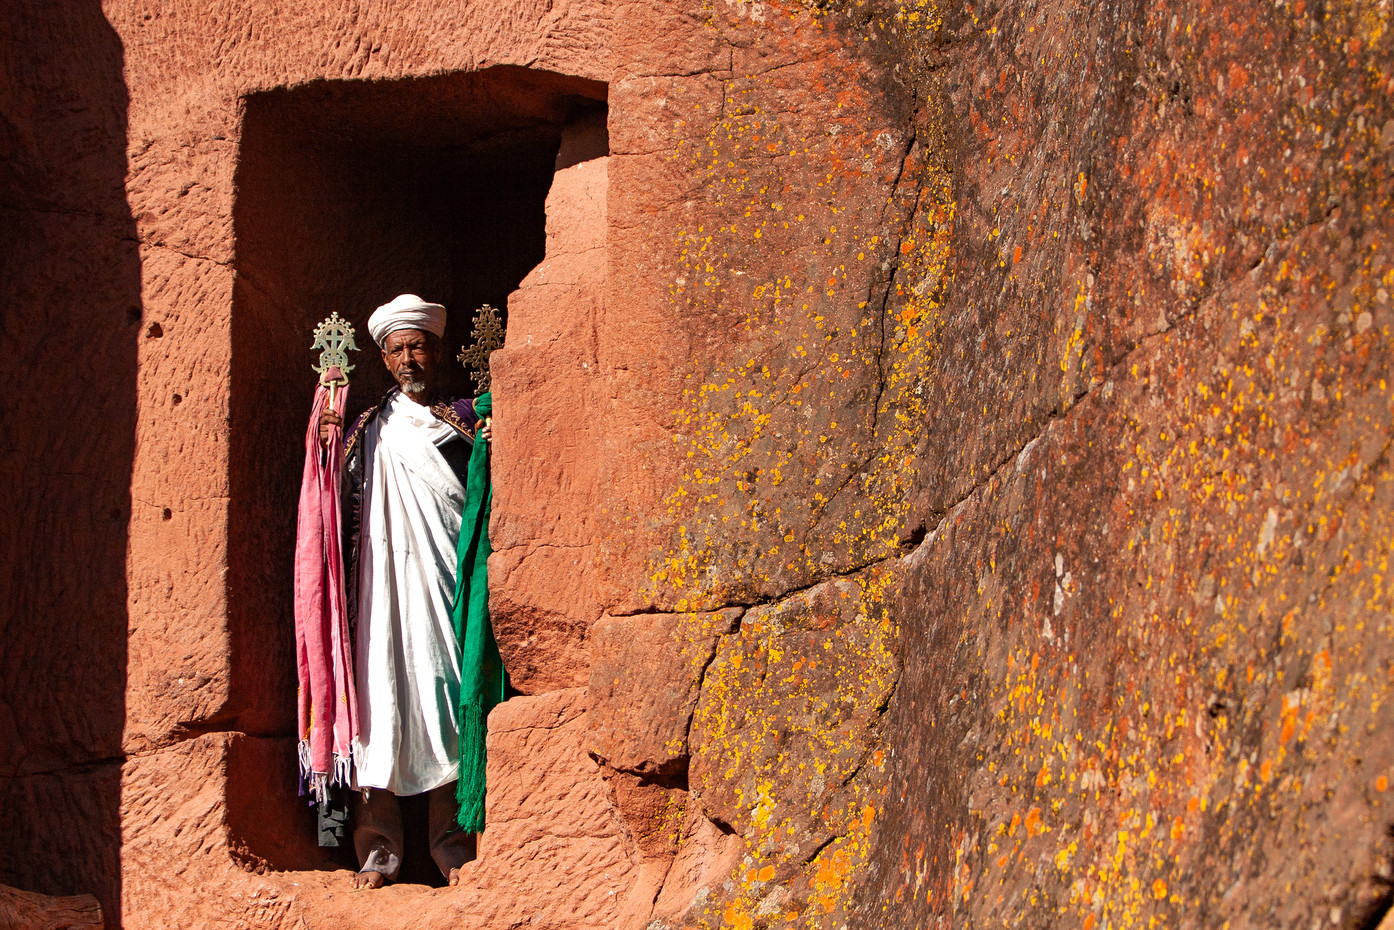 Priest in the rock-hewn churches of Lalibela, Ethiopia